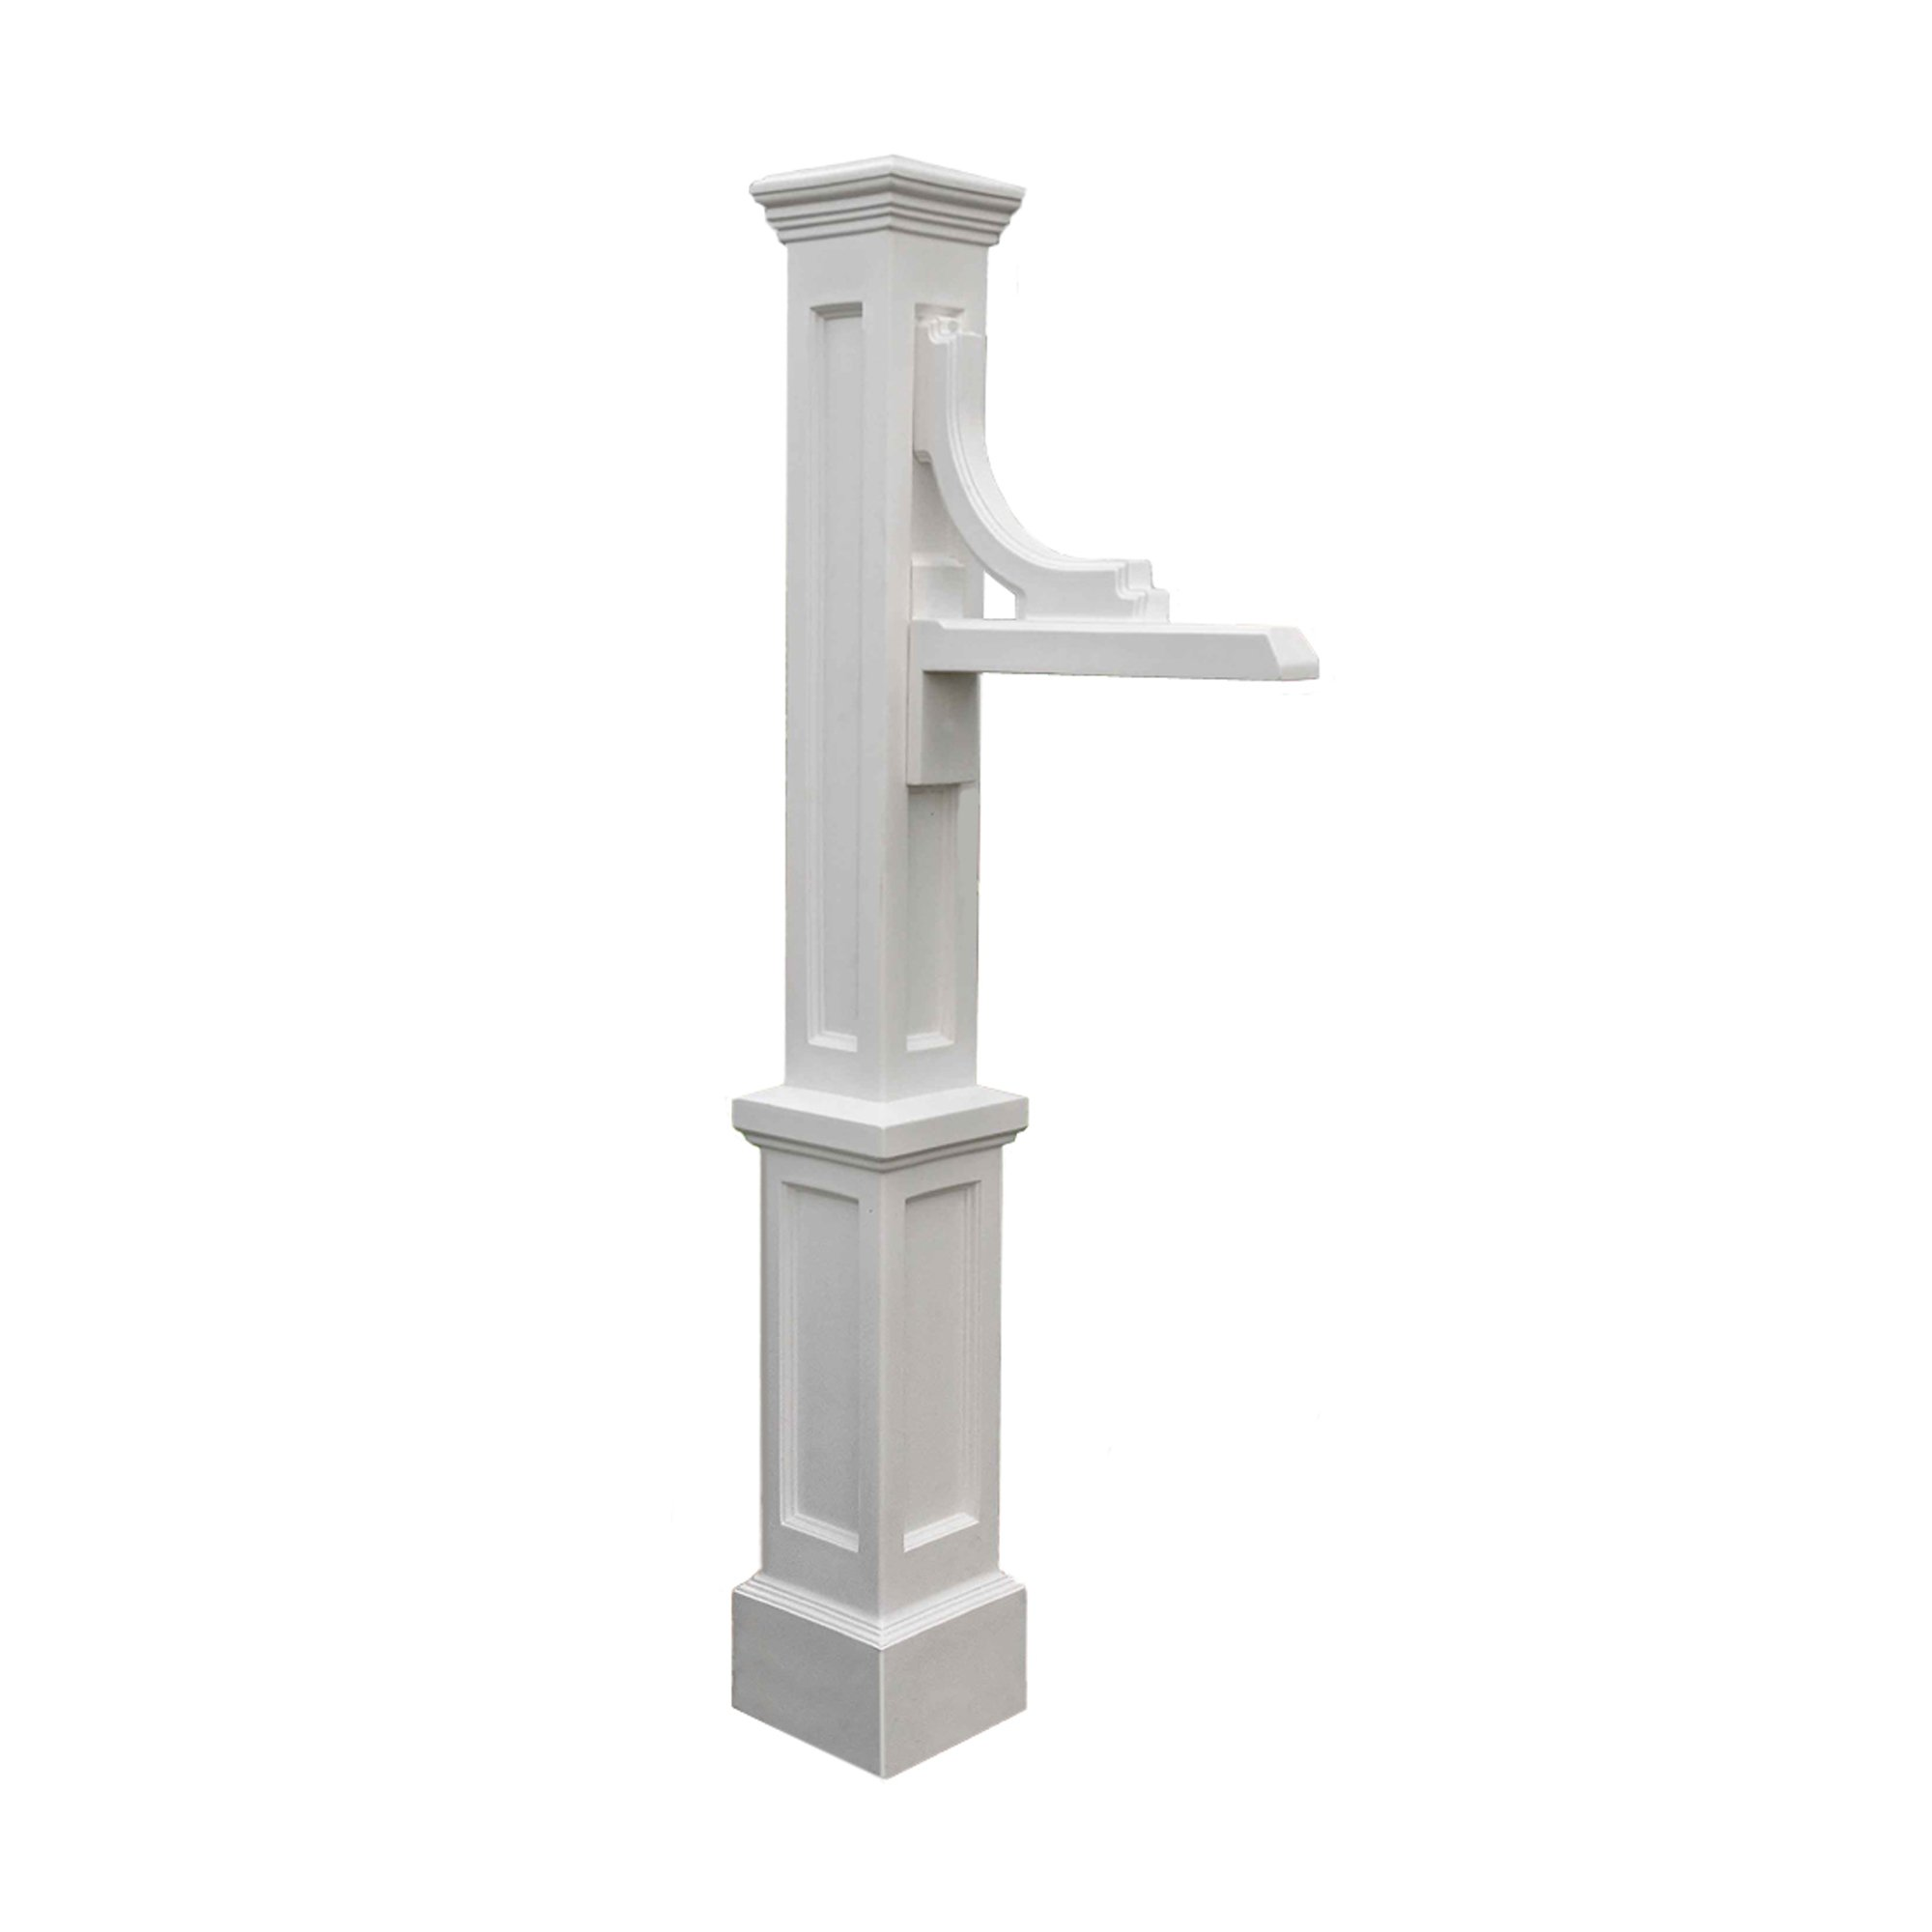 Mayne 5812-WH Woodhaven Address Sign Post, White